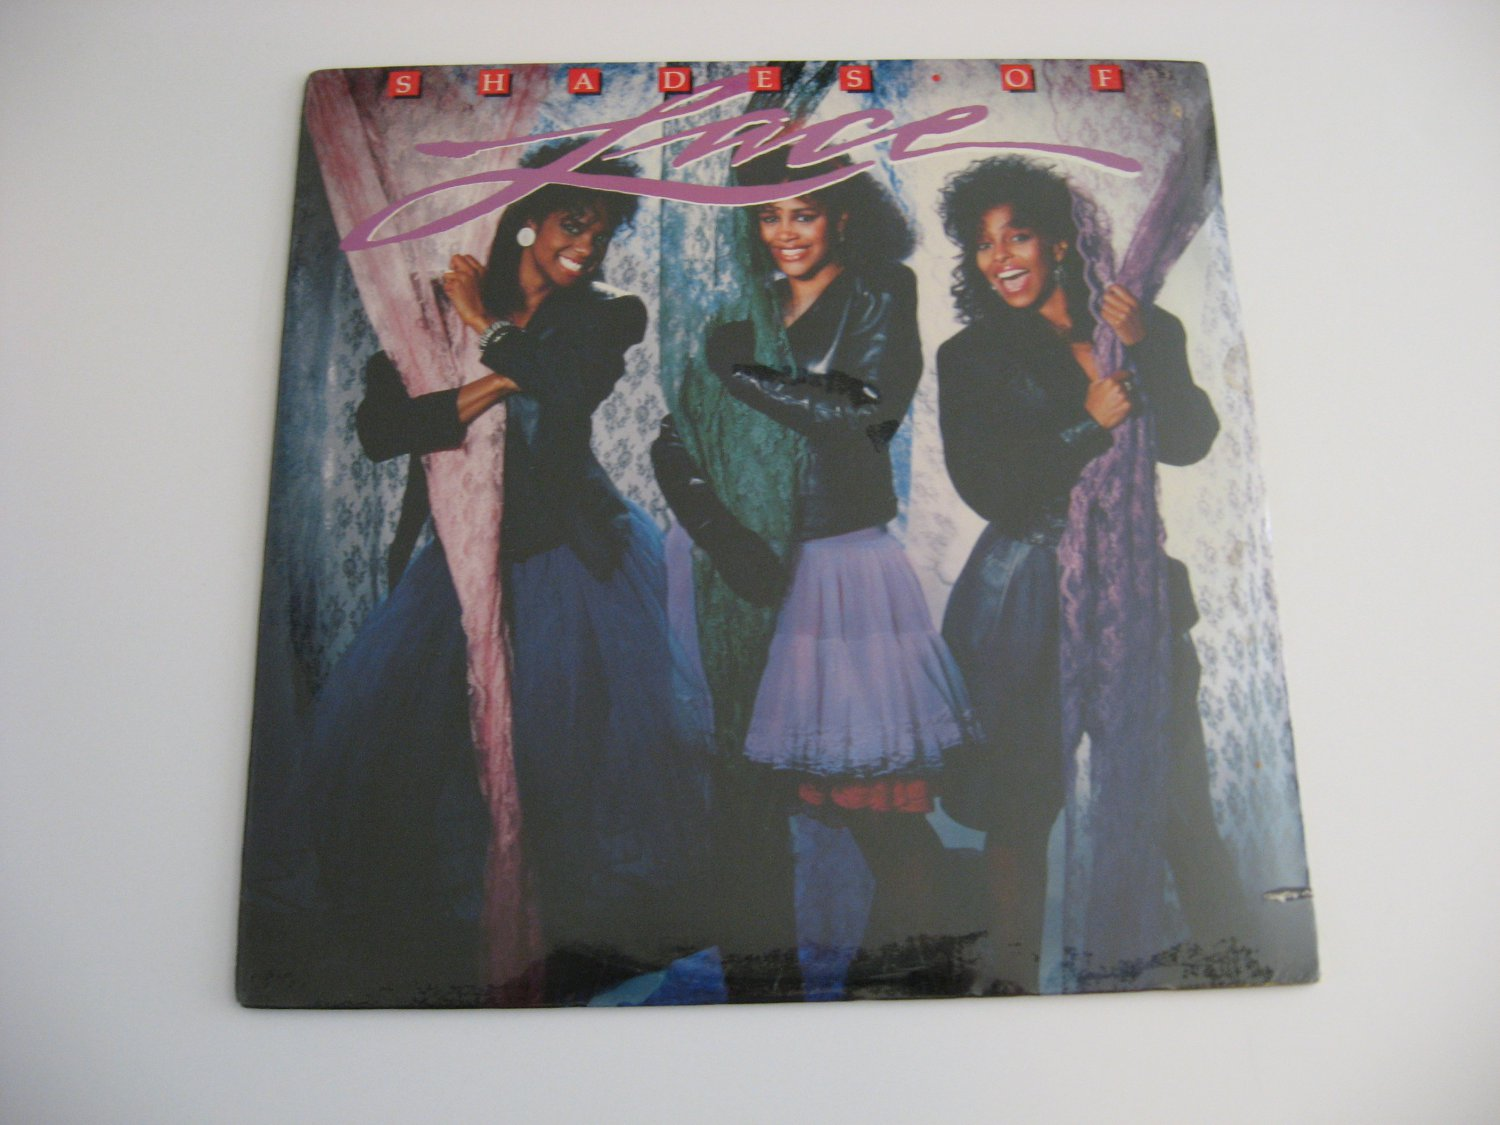 Lace - Shades Of Lace - 1987 - Factory Sealed!   (records)